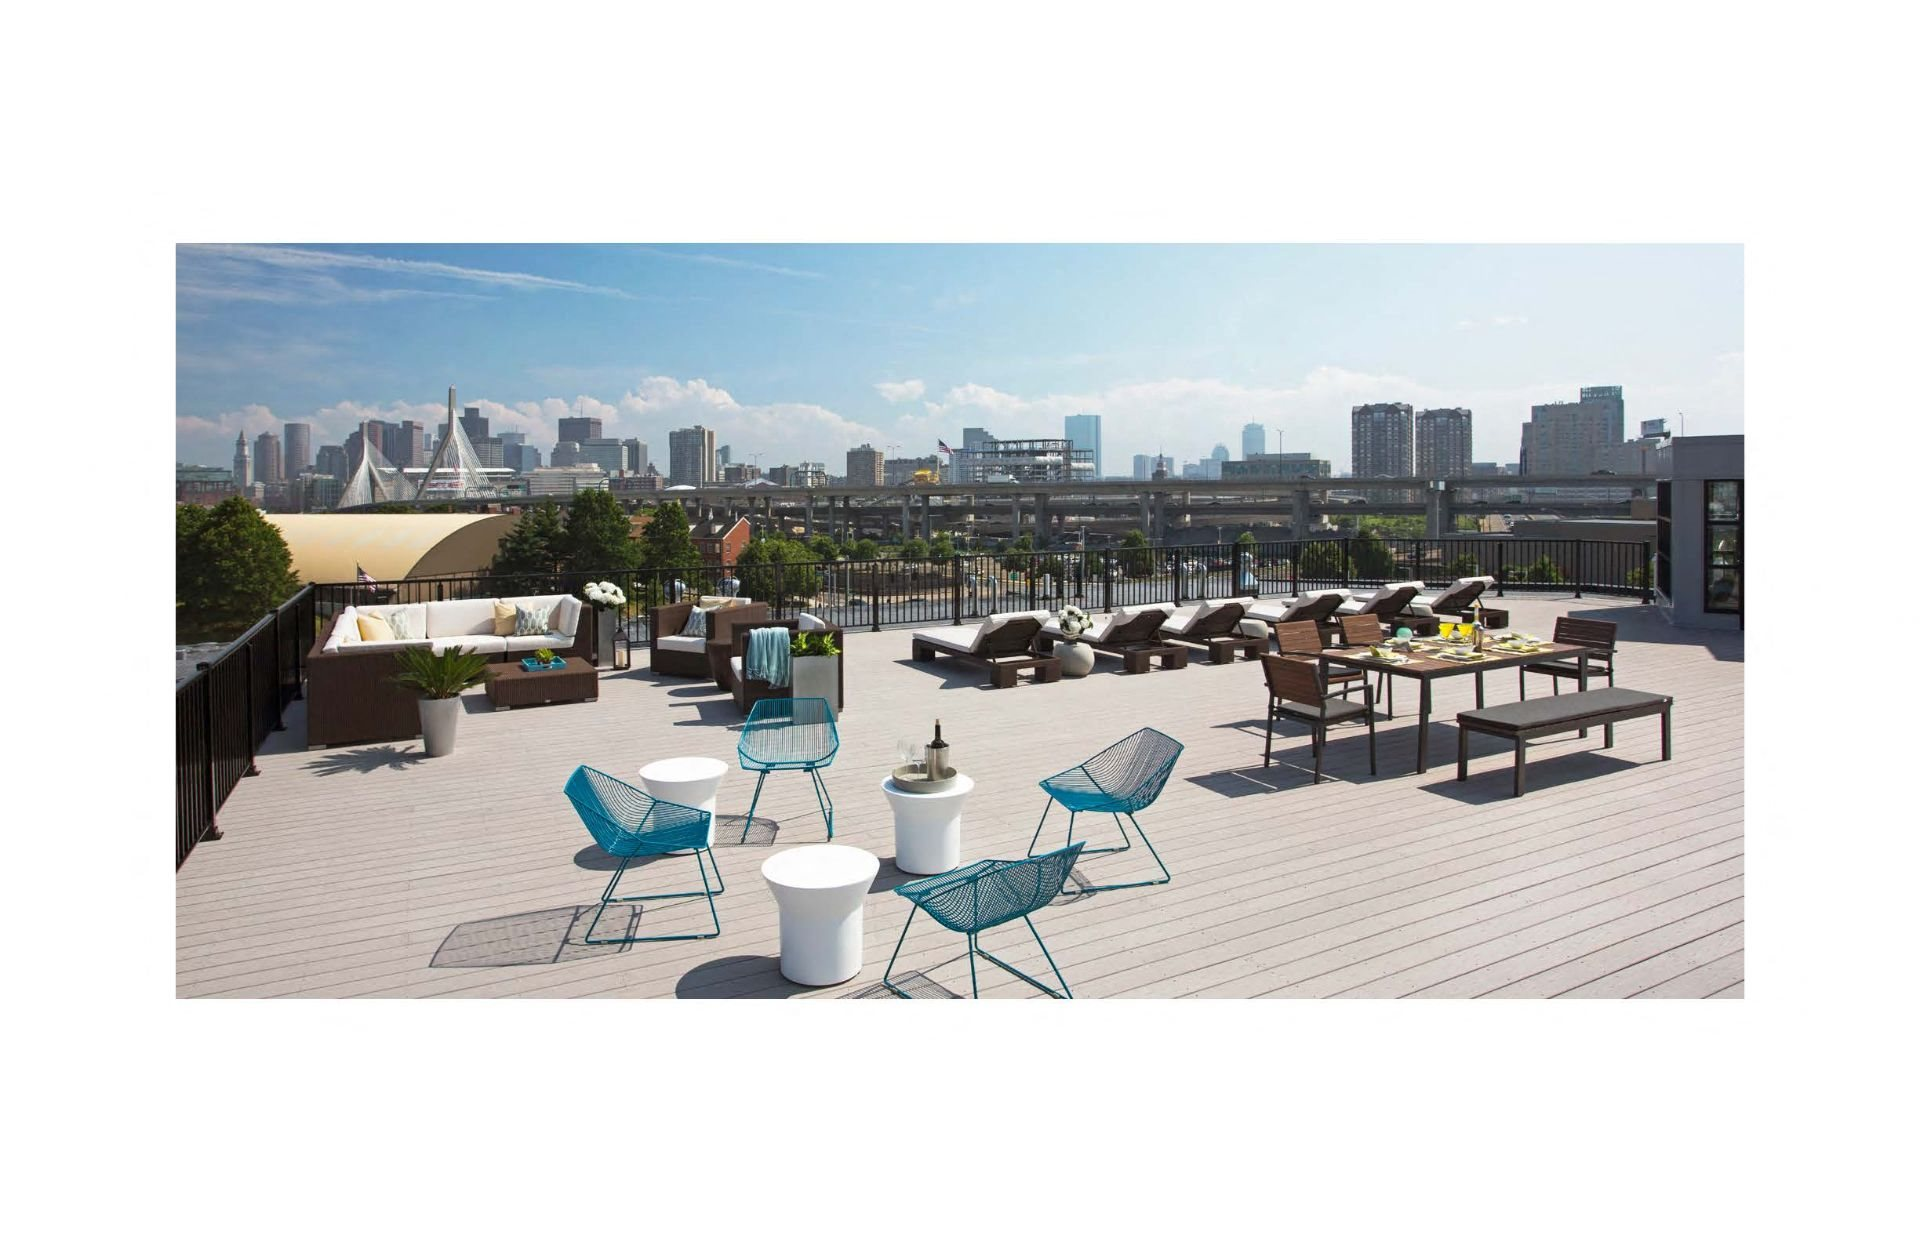 Rooftop Skydeck with Outdoor Living, Outdoor Kitchen with BBQ and alfresco dining, Outdoor Sundeck with Lounges at Gatehouse 75, Charlestown, 02129